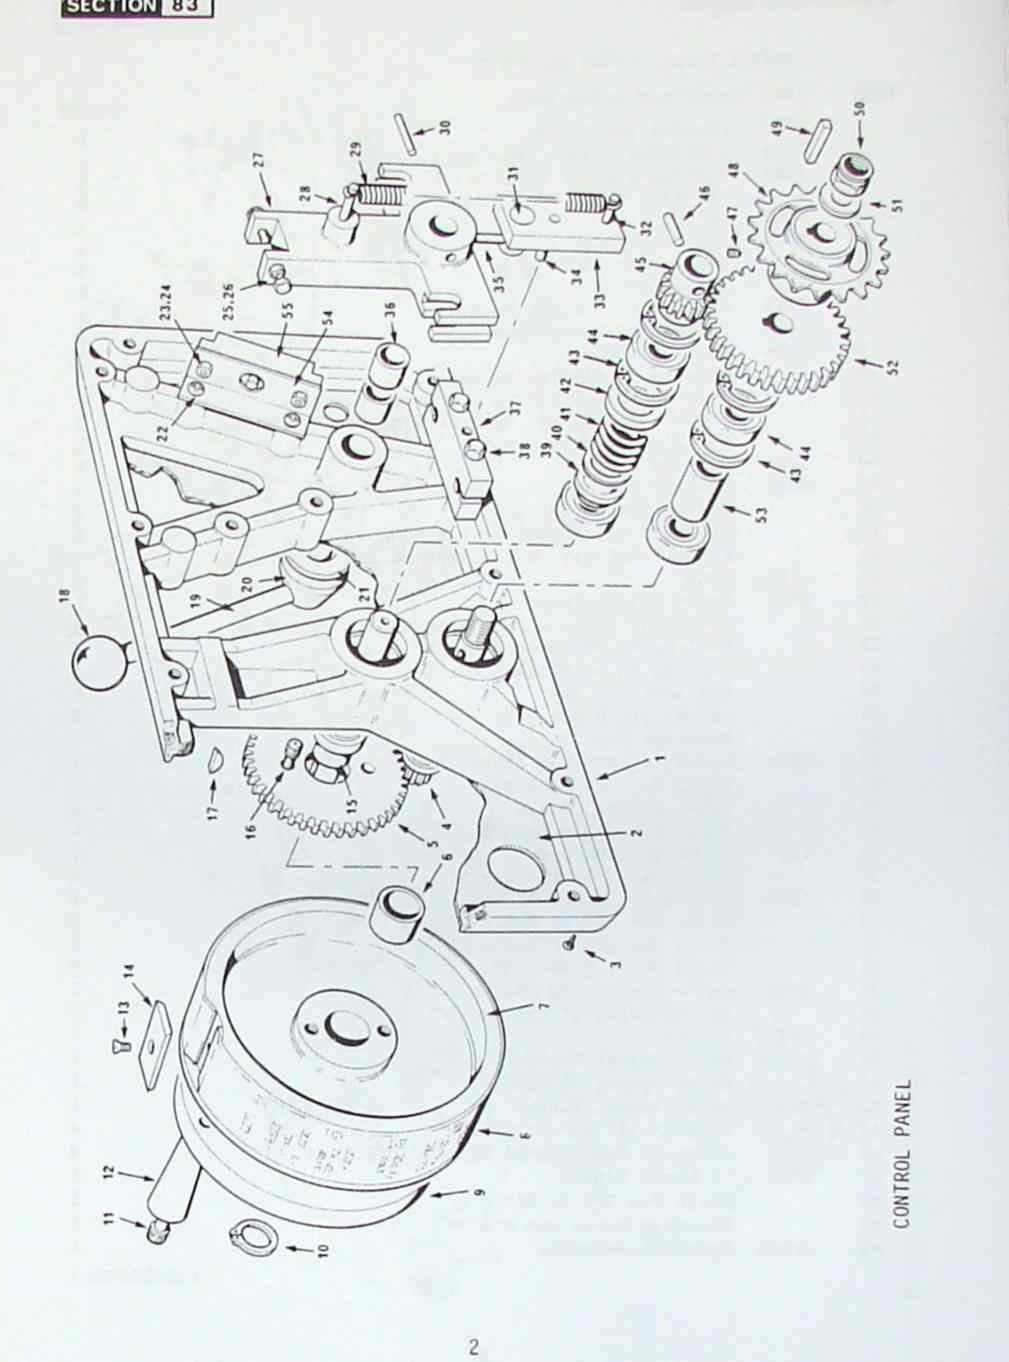 Monarch Hydraulic Pump Parts Diagram Share The Knownledge